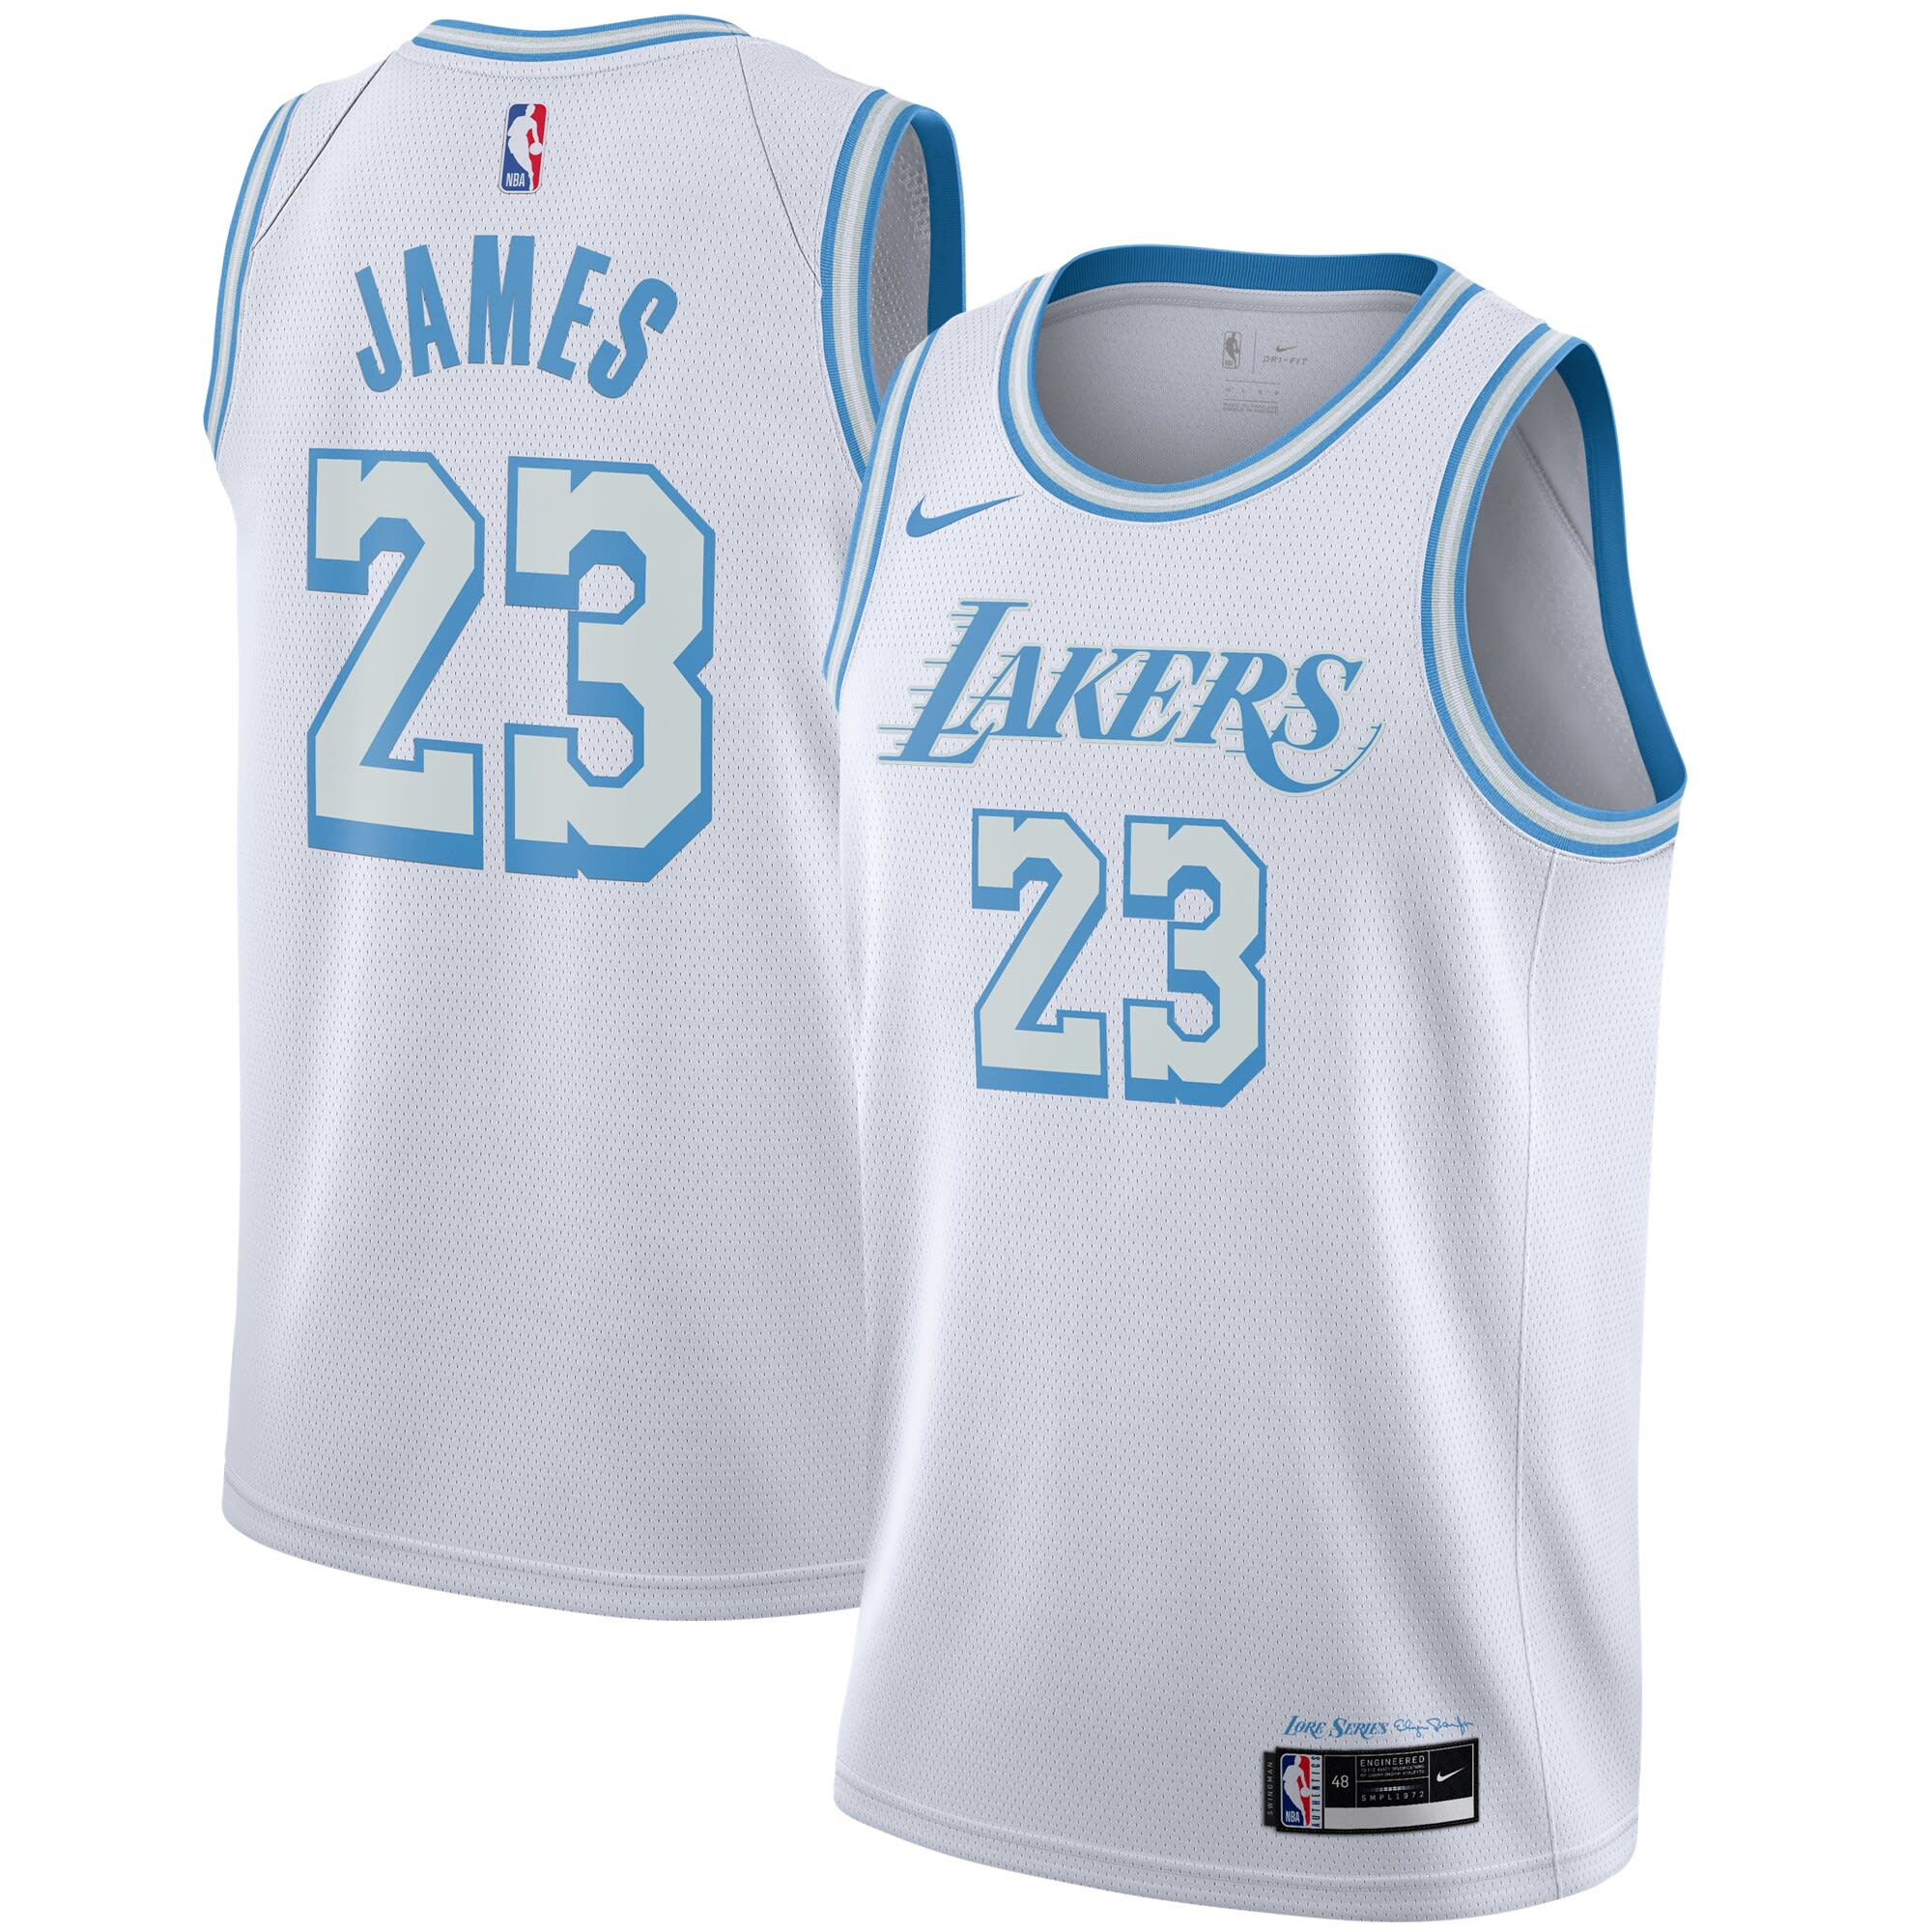 Order the amazing Los Angeles Lakers